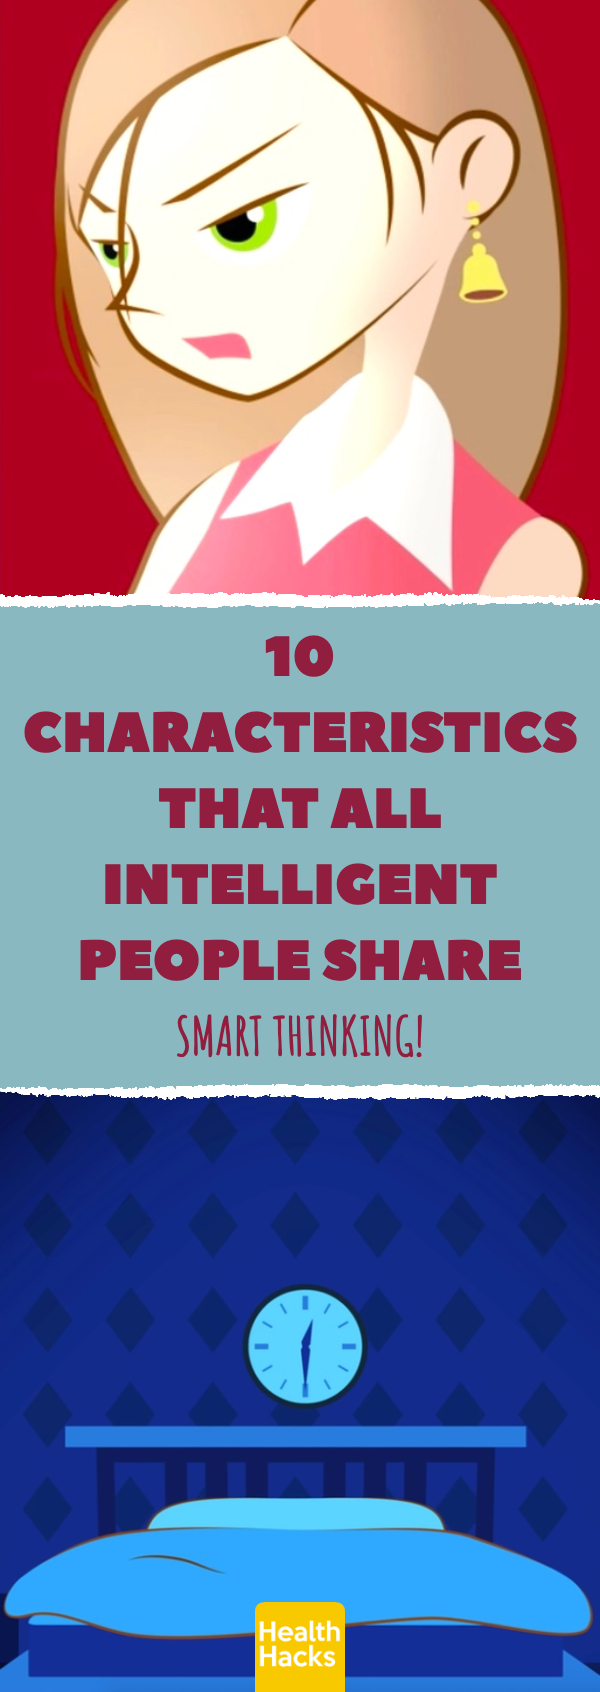 10 Characteristics That All Intelligent People Share